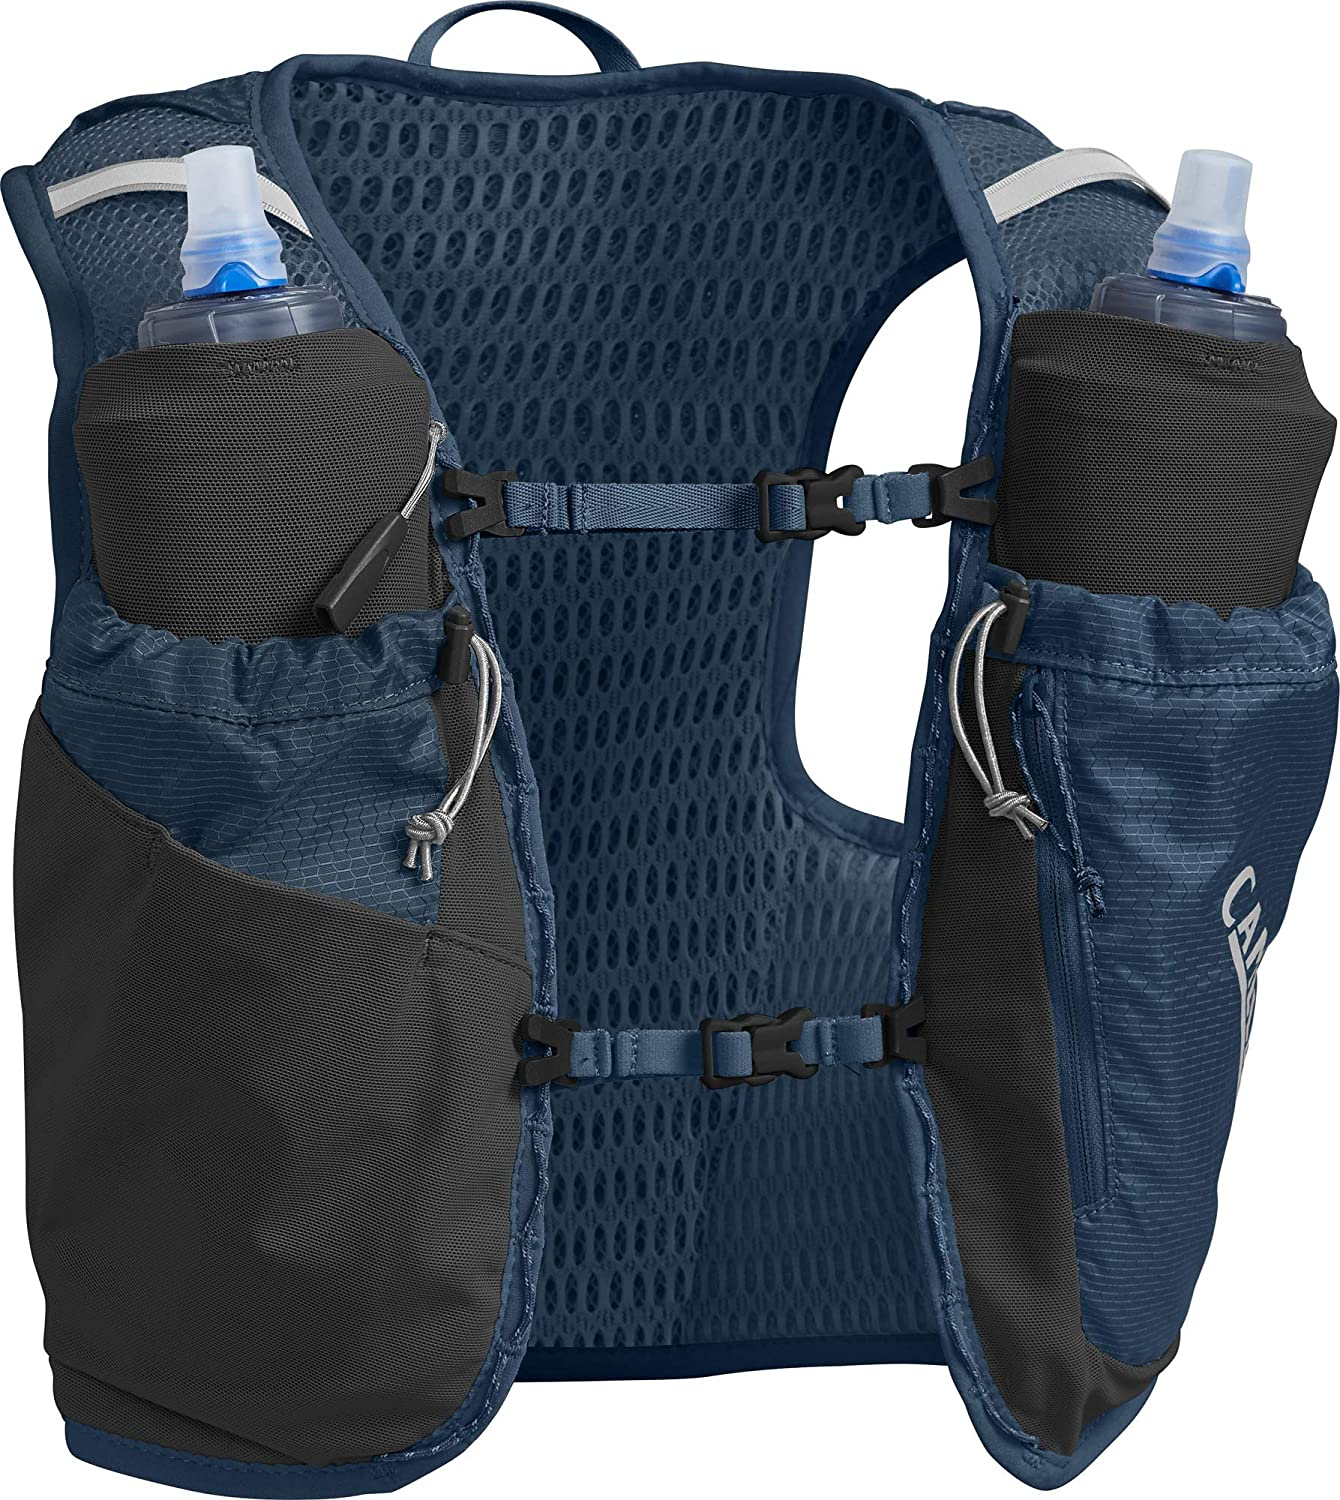 CamelBak Women's Ultra Pro Running Hydration Vest - 3D Micro Mesh - Two 500-ml Quick Stow Flasks - Dual Adjustable Sternum Straps - Secure Phone Pocket - Running Vest - 34 Ounces